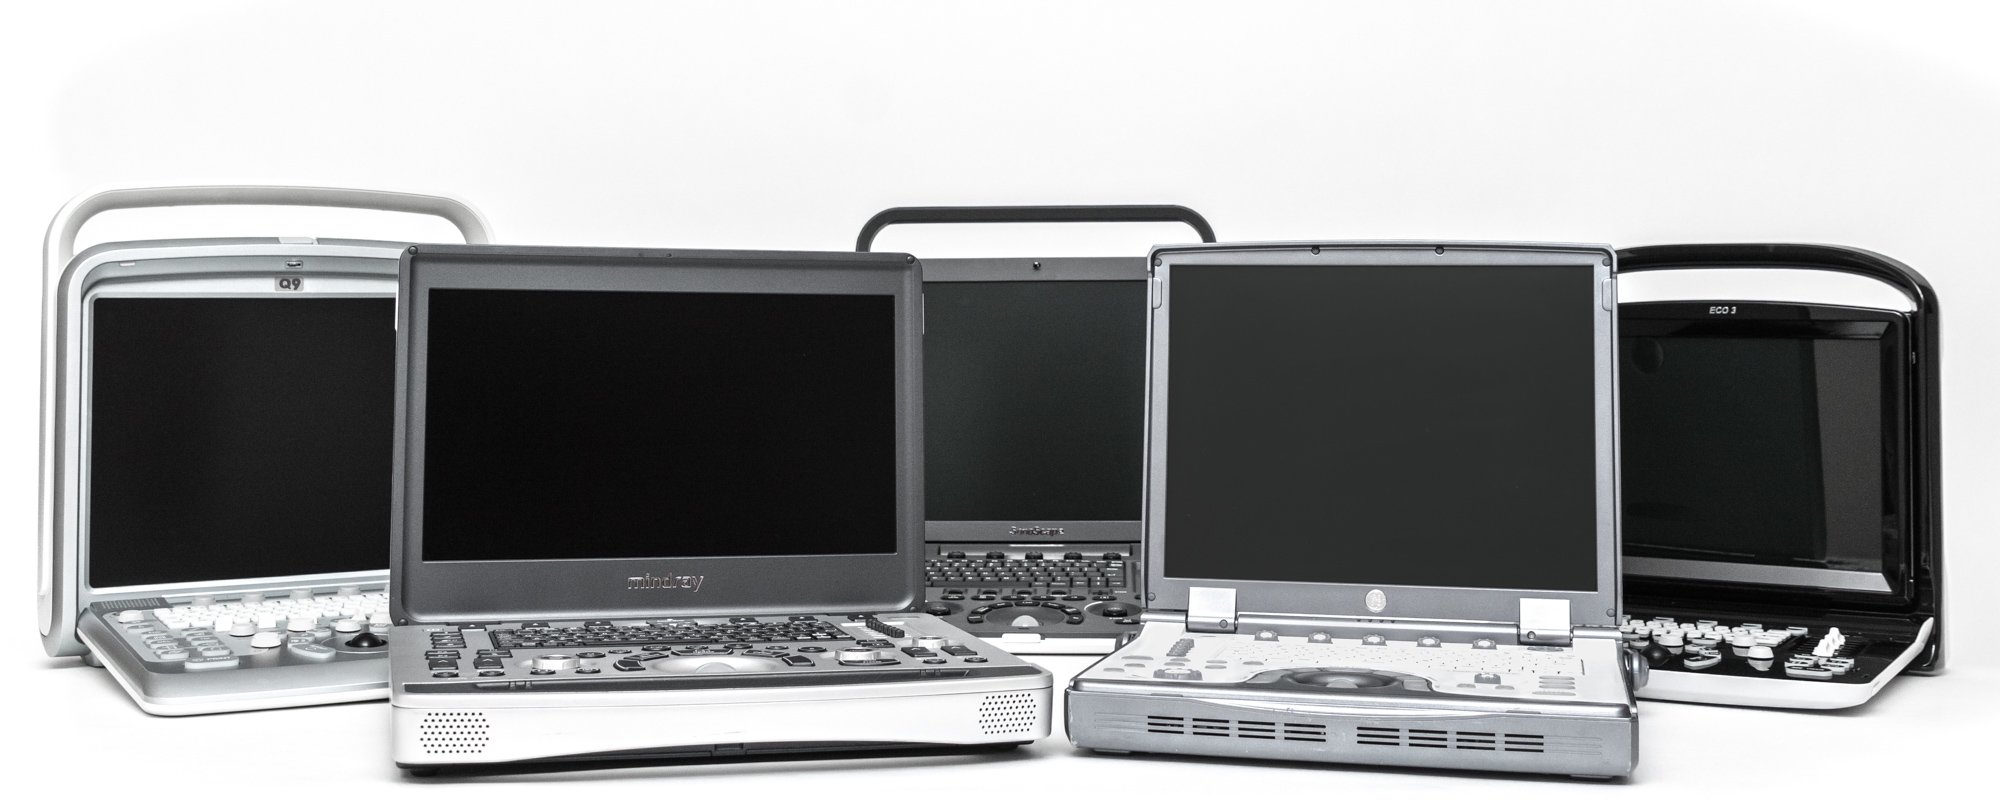 Find laptop ultrasounds from Mindray, Sonosite, GE, and others